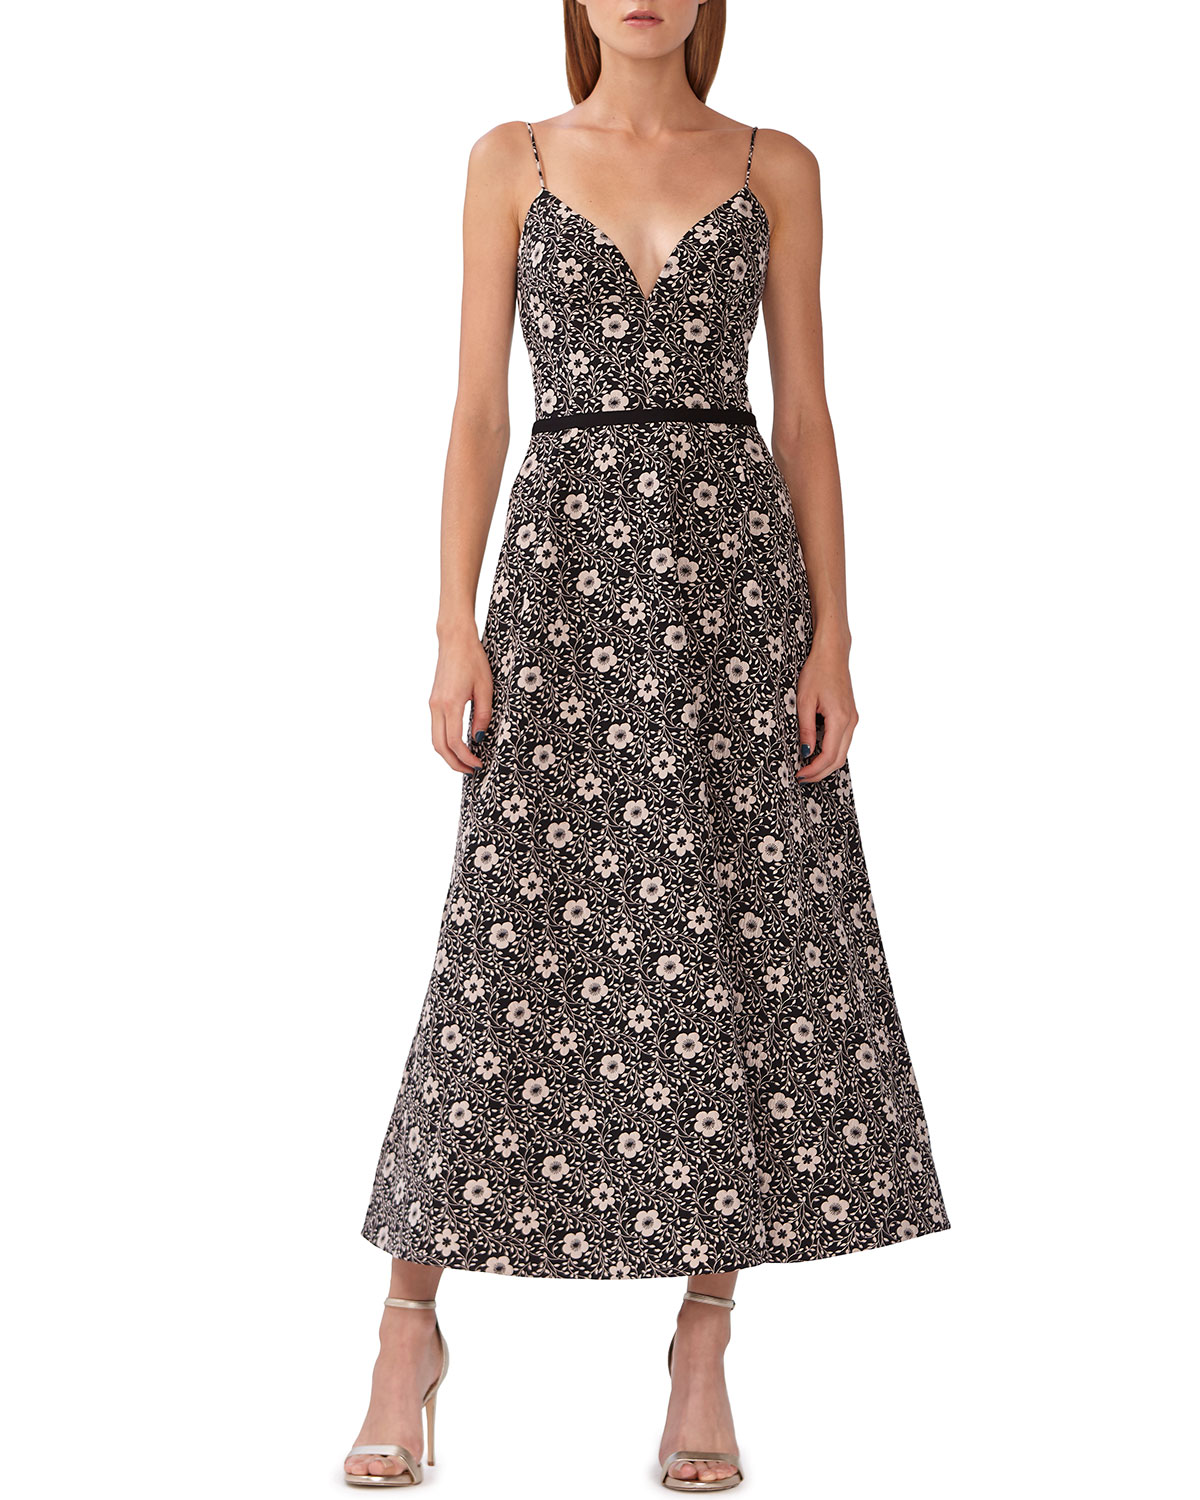 ML Monique Lhuillier Floral Jacquard Midi Dress